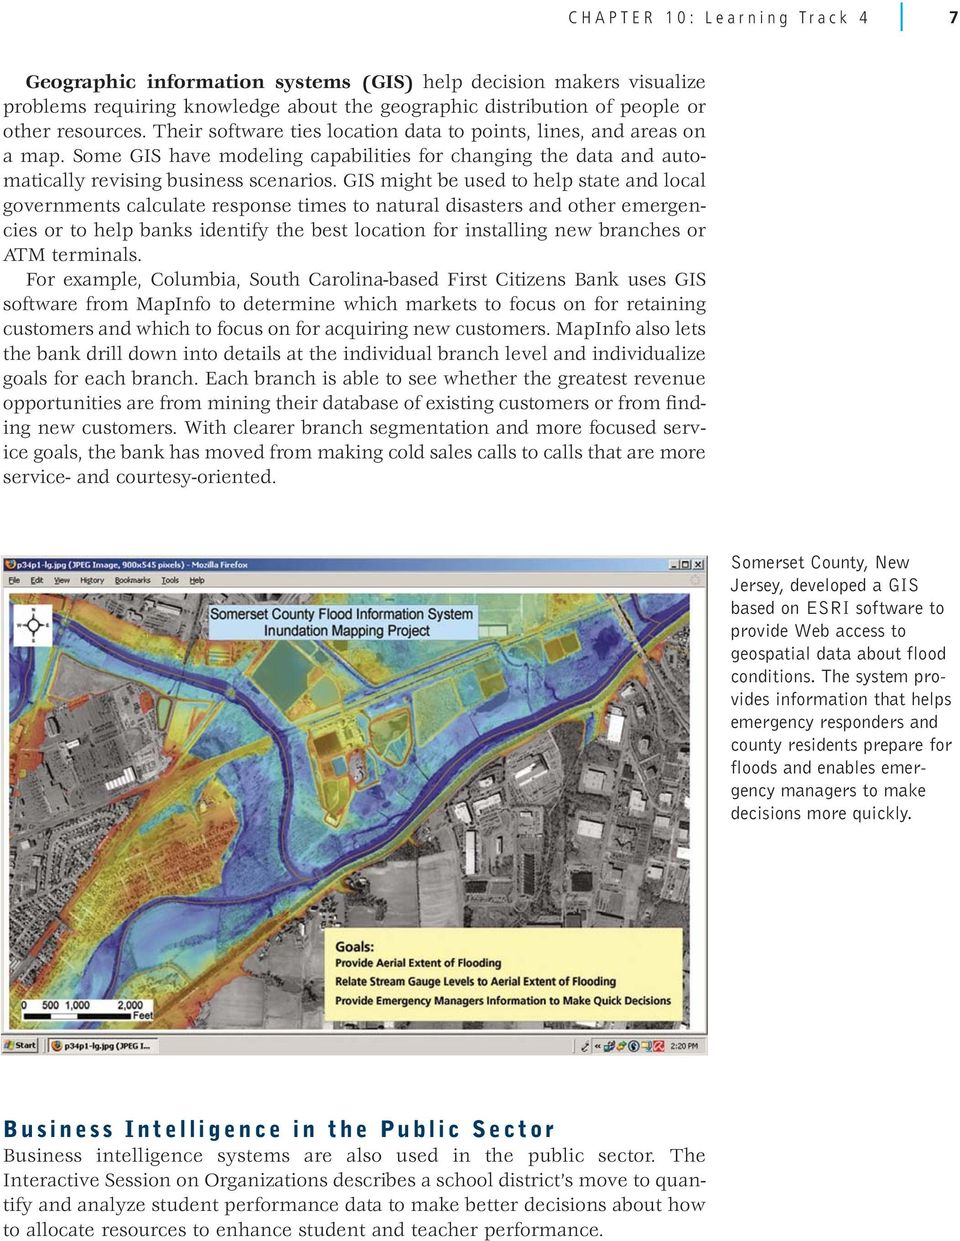 GIS might be used to help state and local governments calculate response times to natural disasters and other emergencies or to help banks identify the best location for installing new branches or